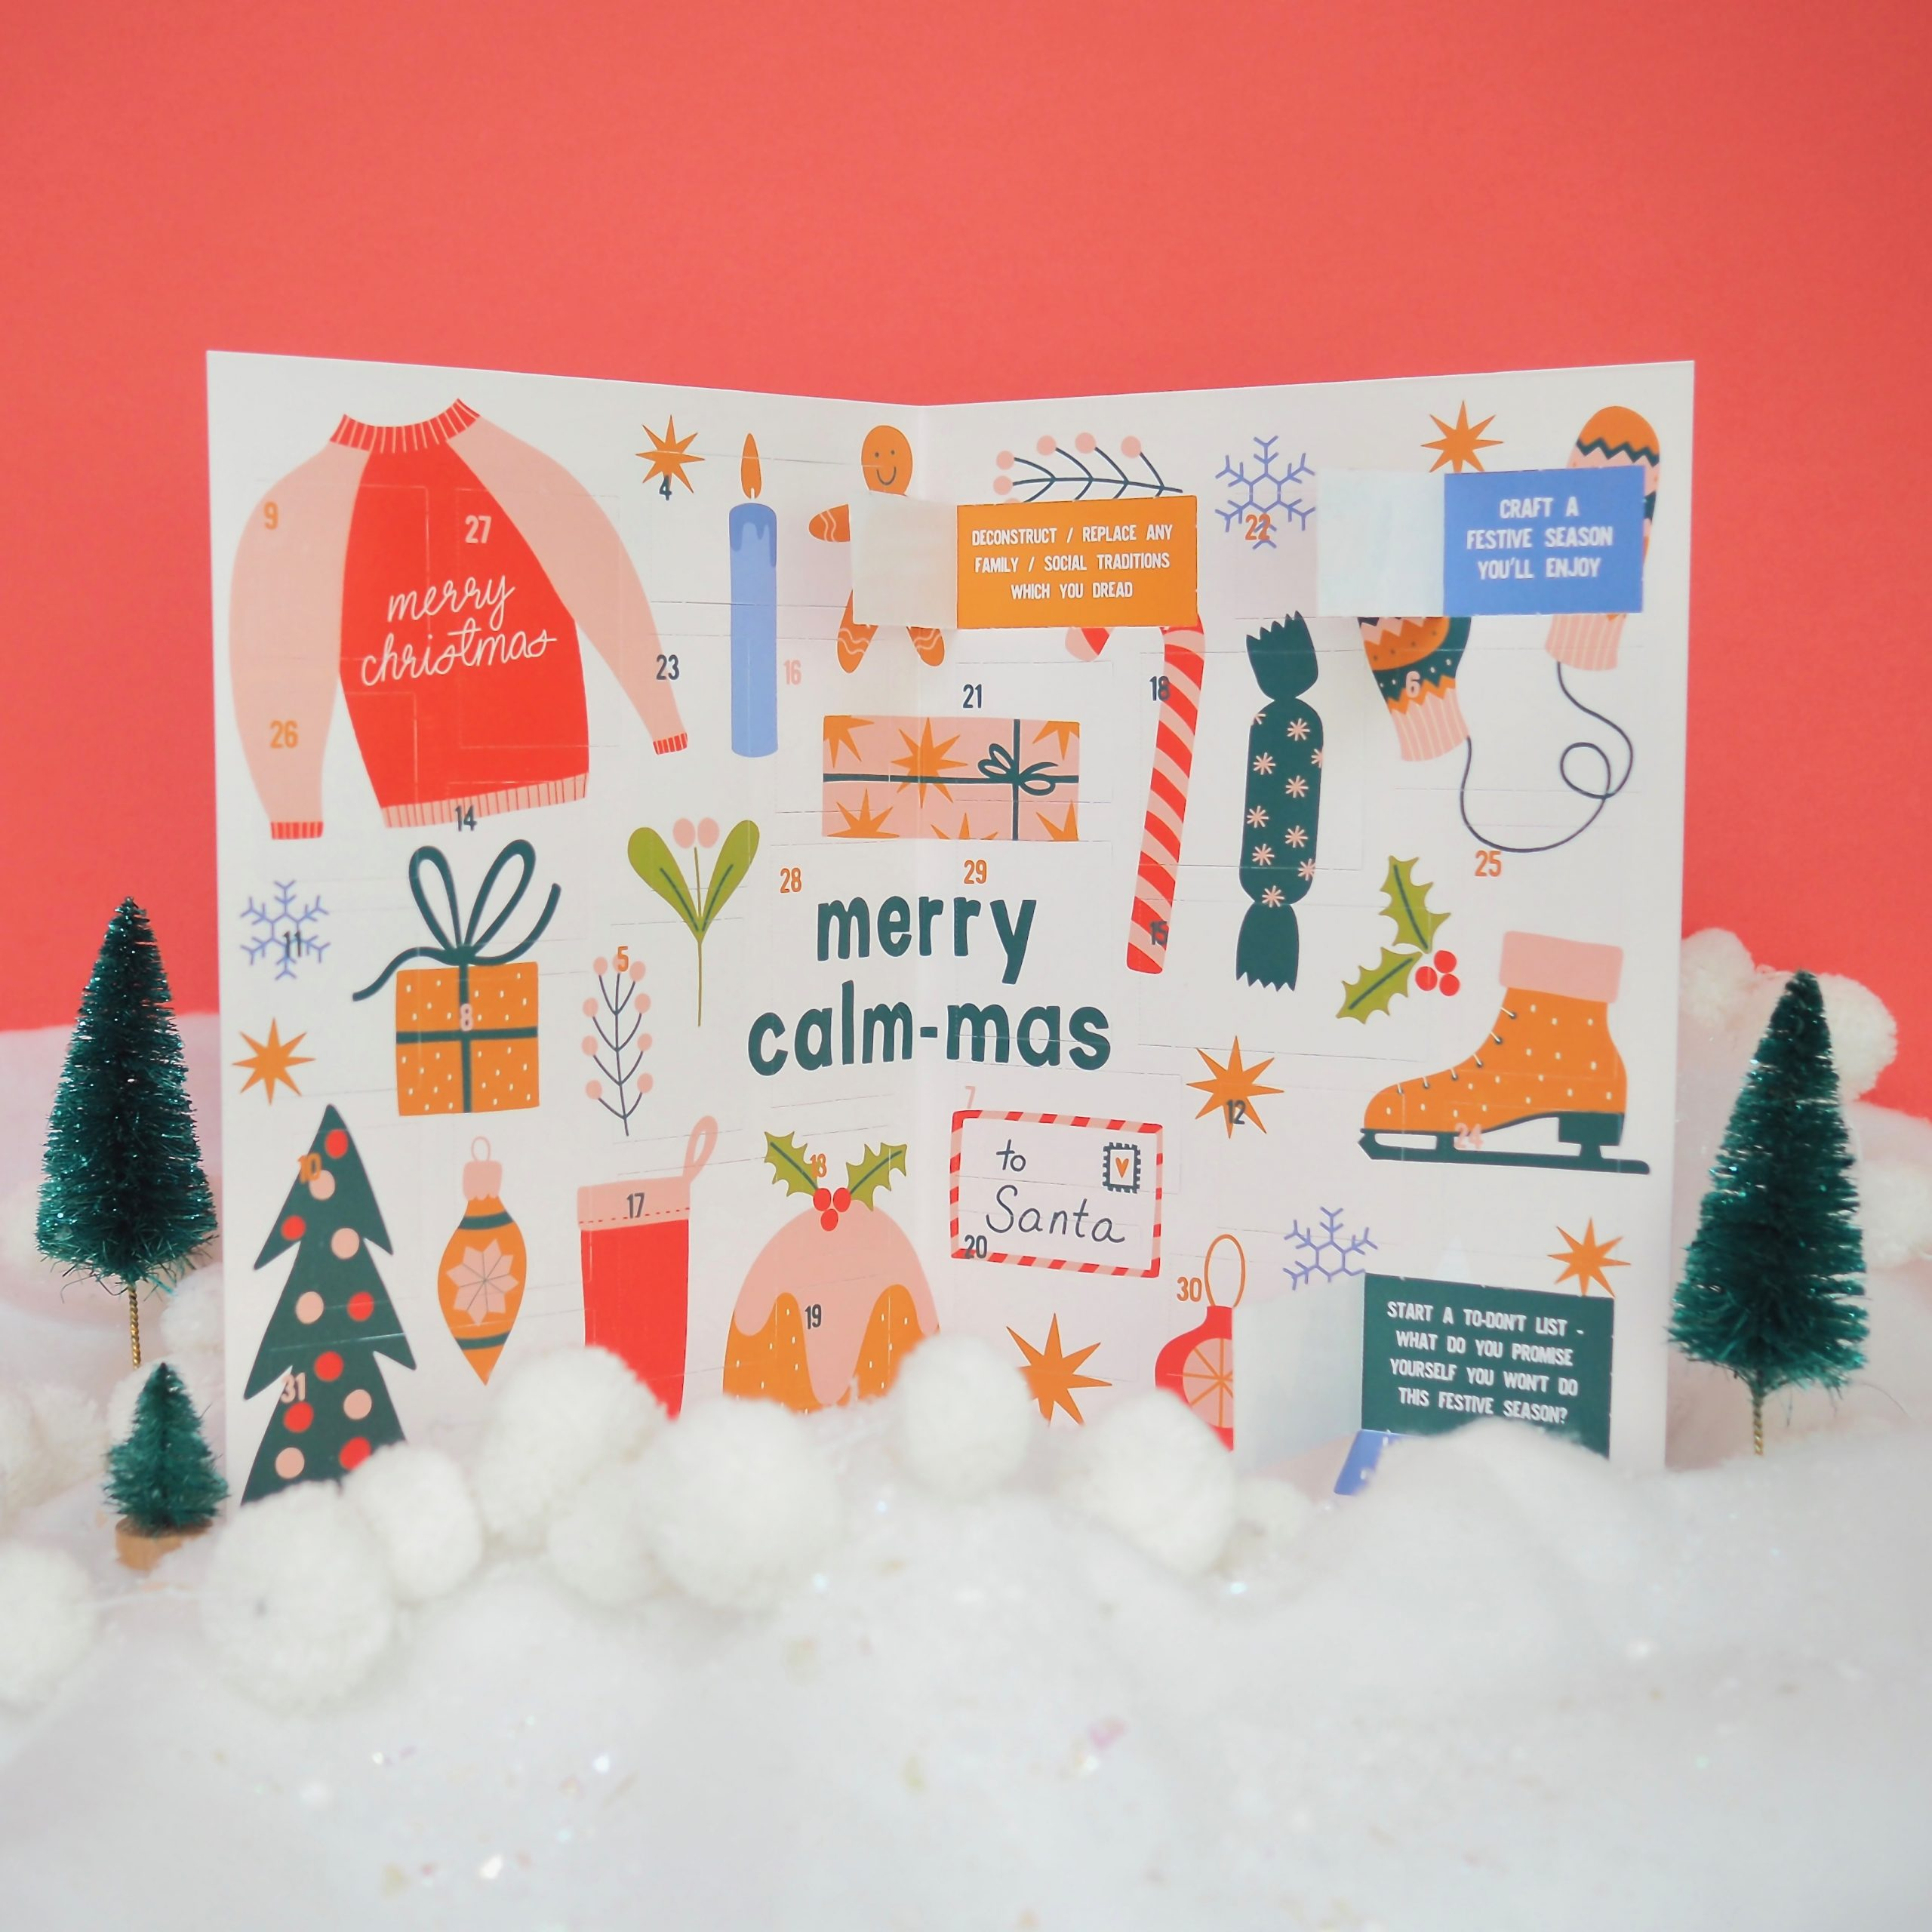 a3 Merry Calm-ma Advent Calendar With 31 Self-Care Prompts